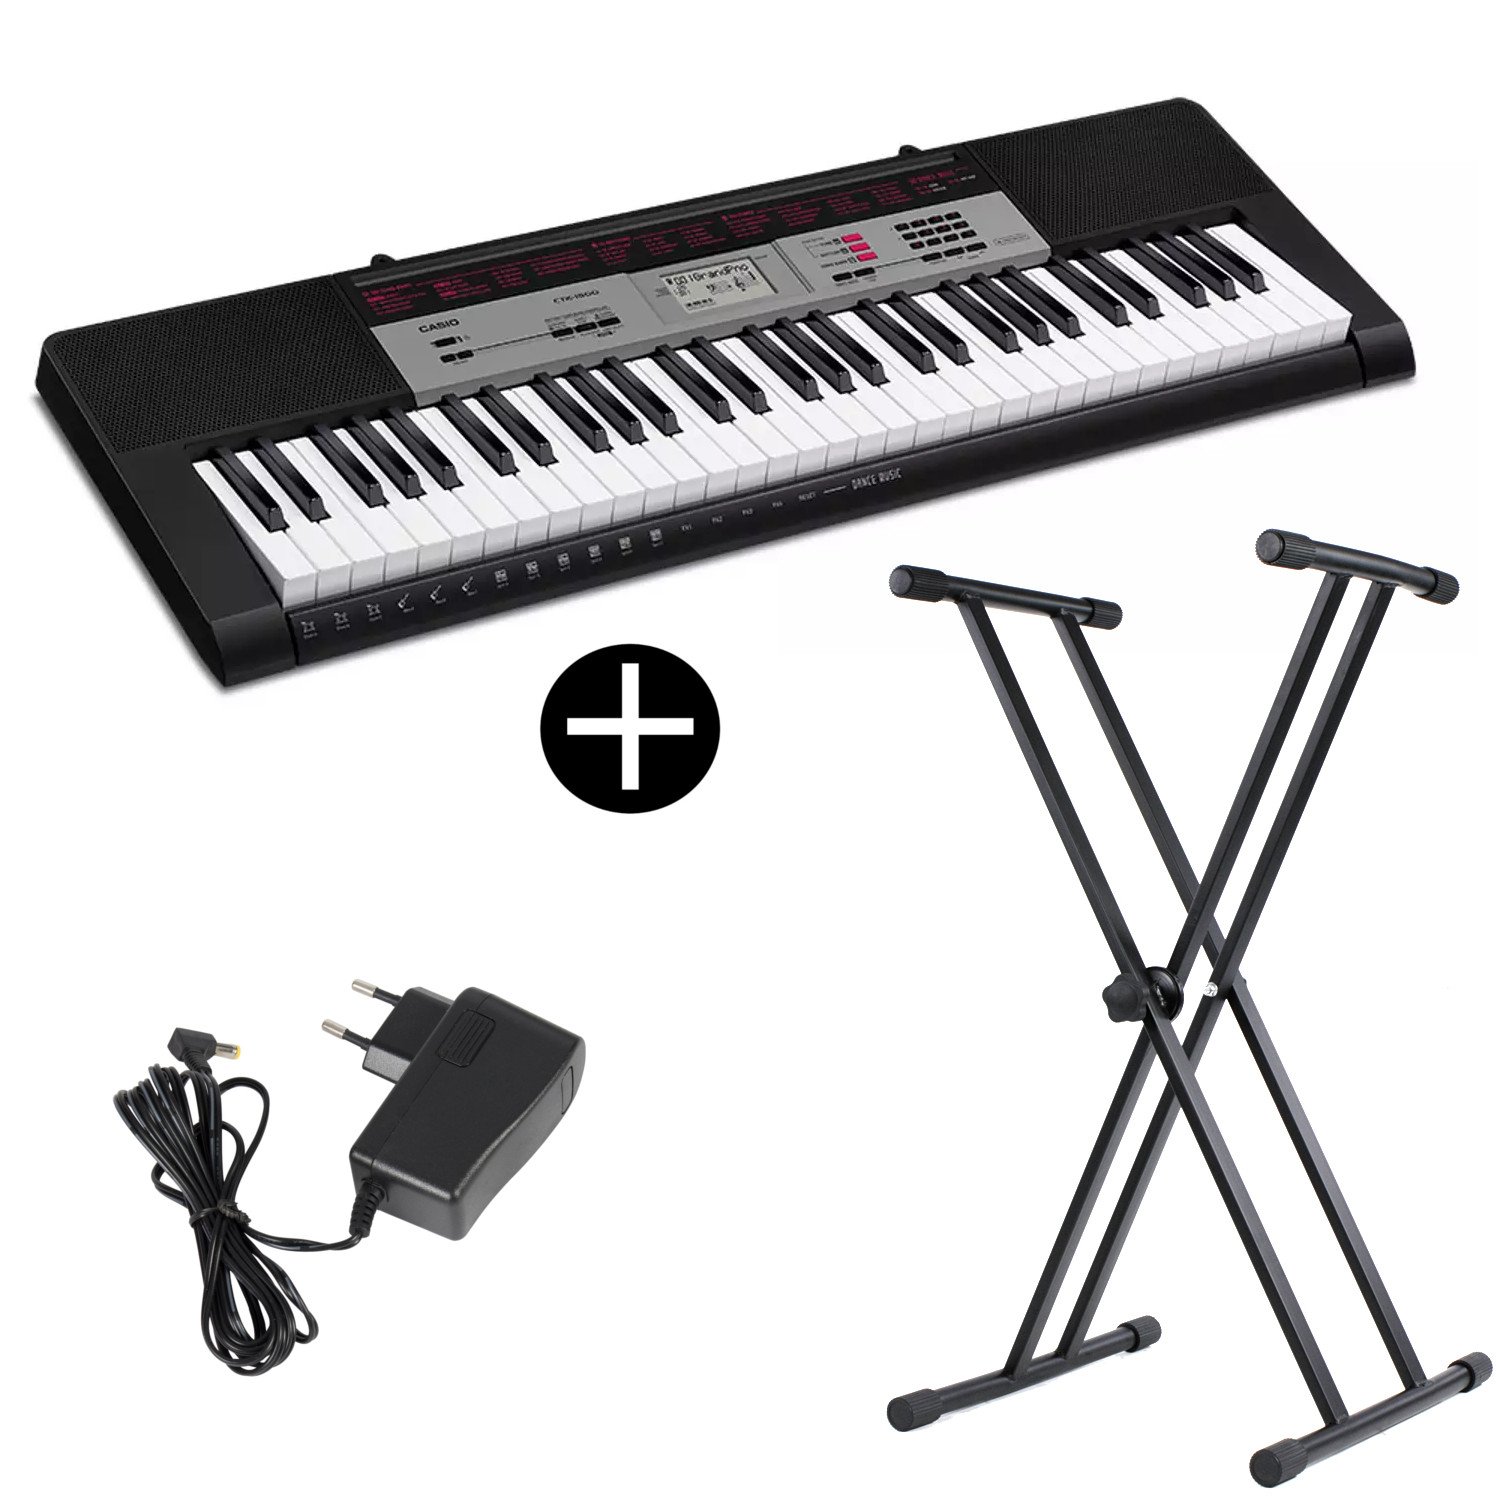 Casio CTK 1500 61 note keyboard with stand and adapter